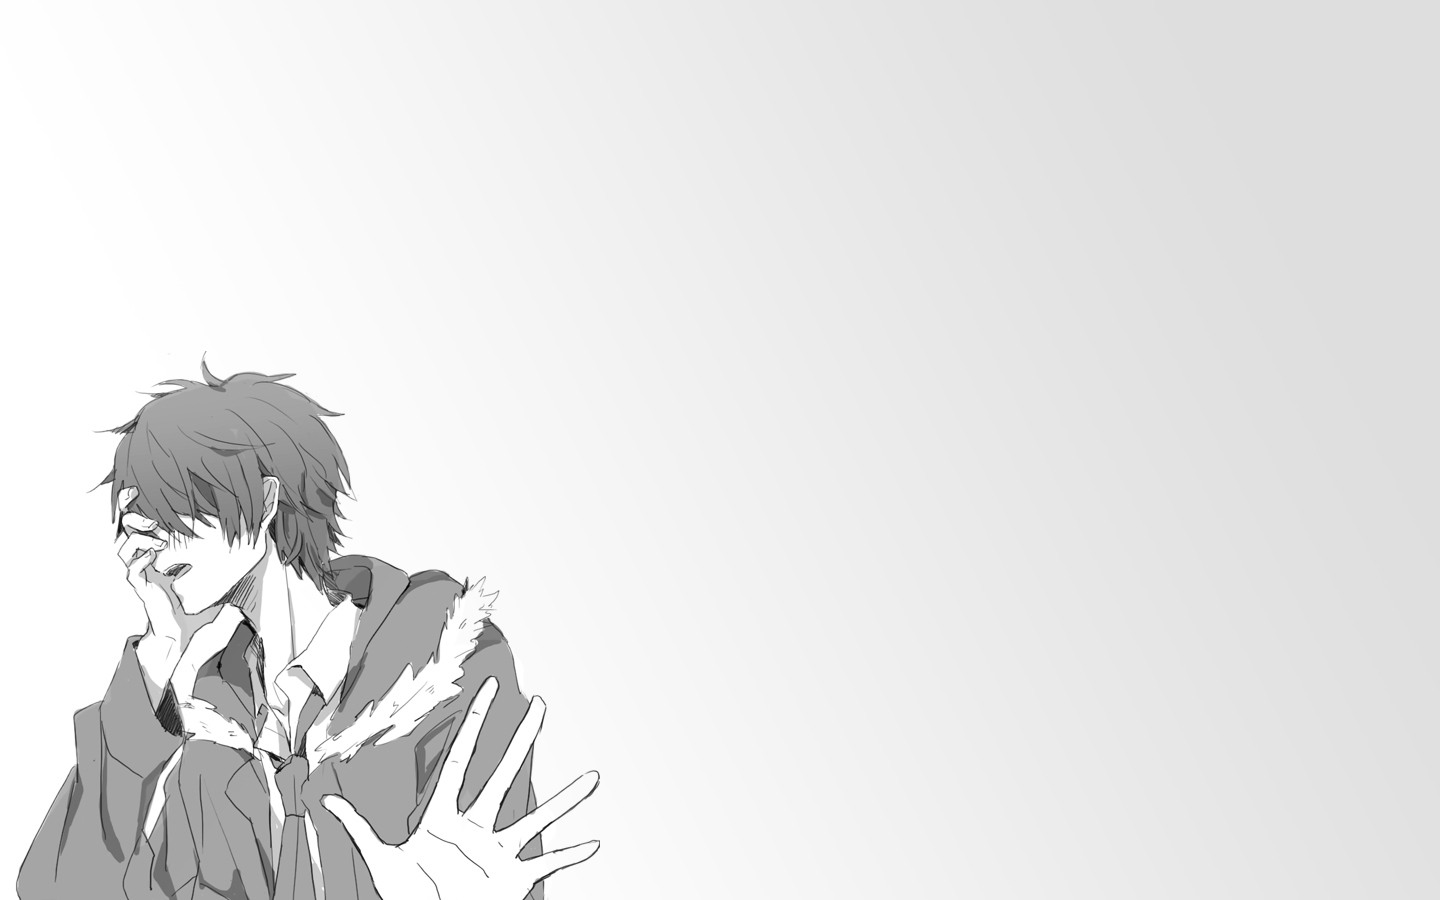 Tags Anime Tiringo8 Open Hoodie 1440x900 Wallpaper Tumblr